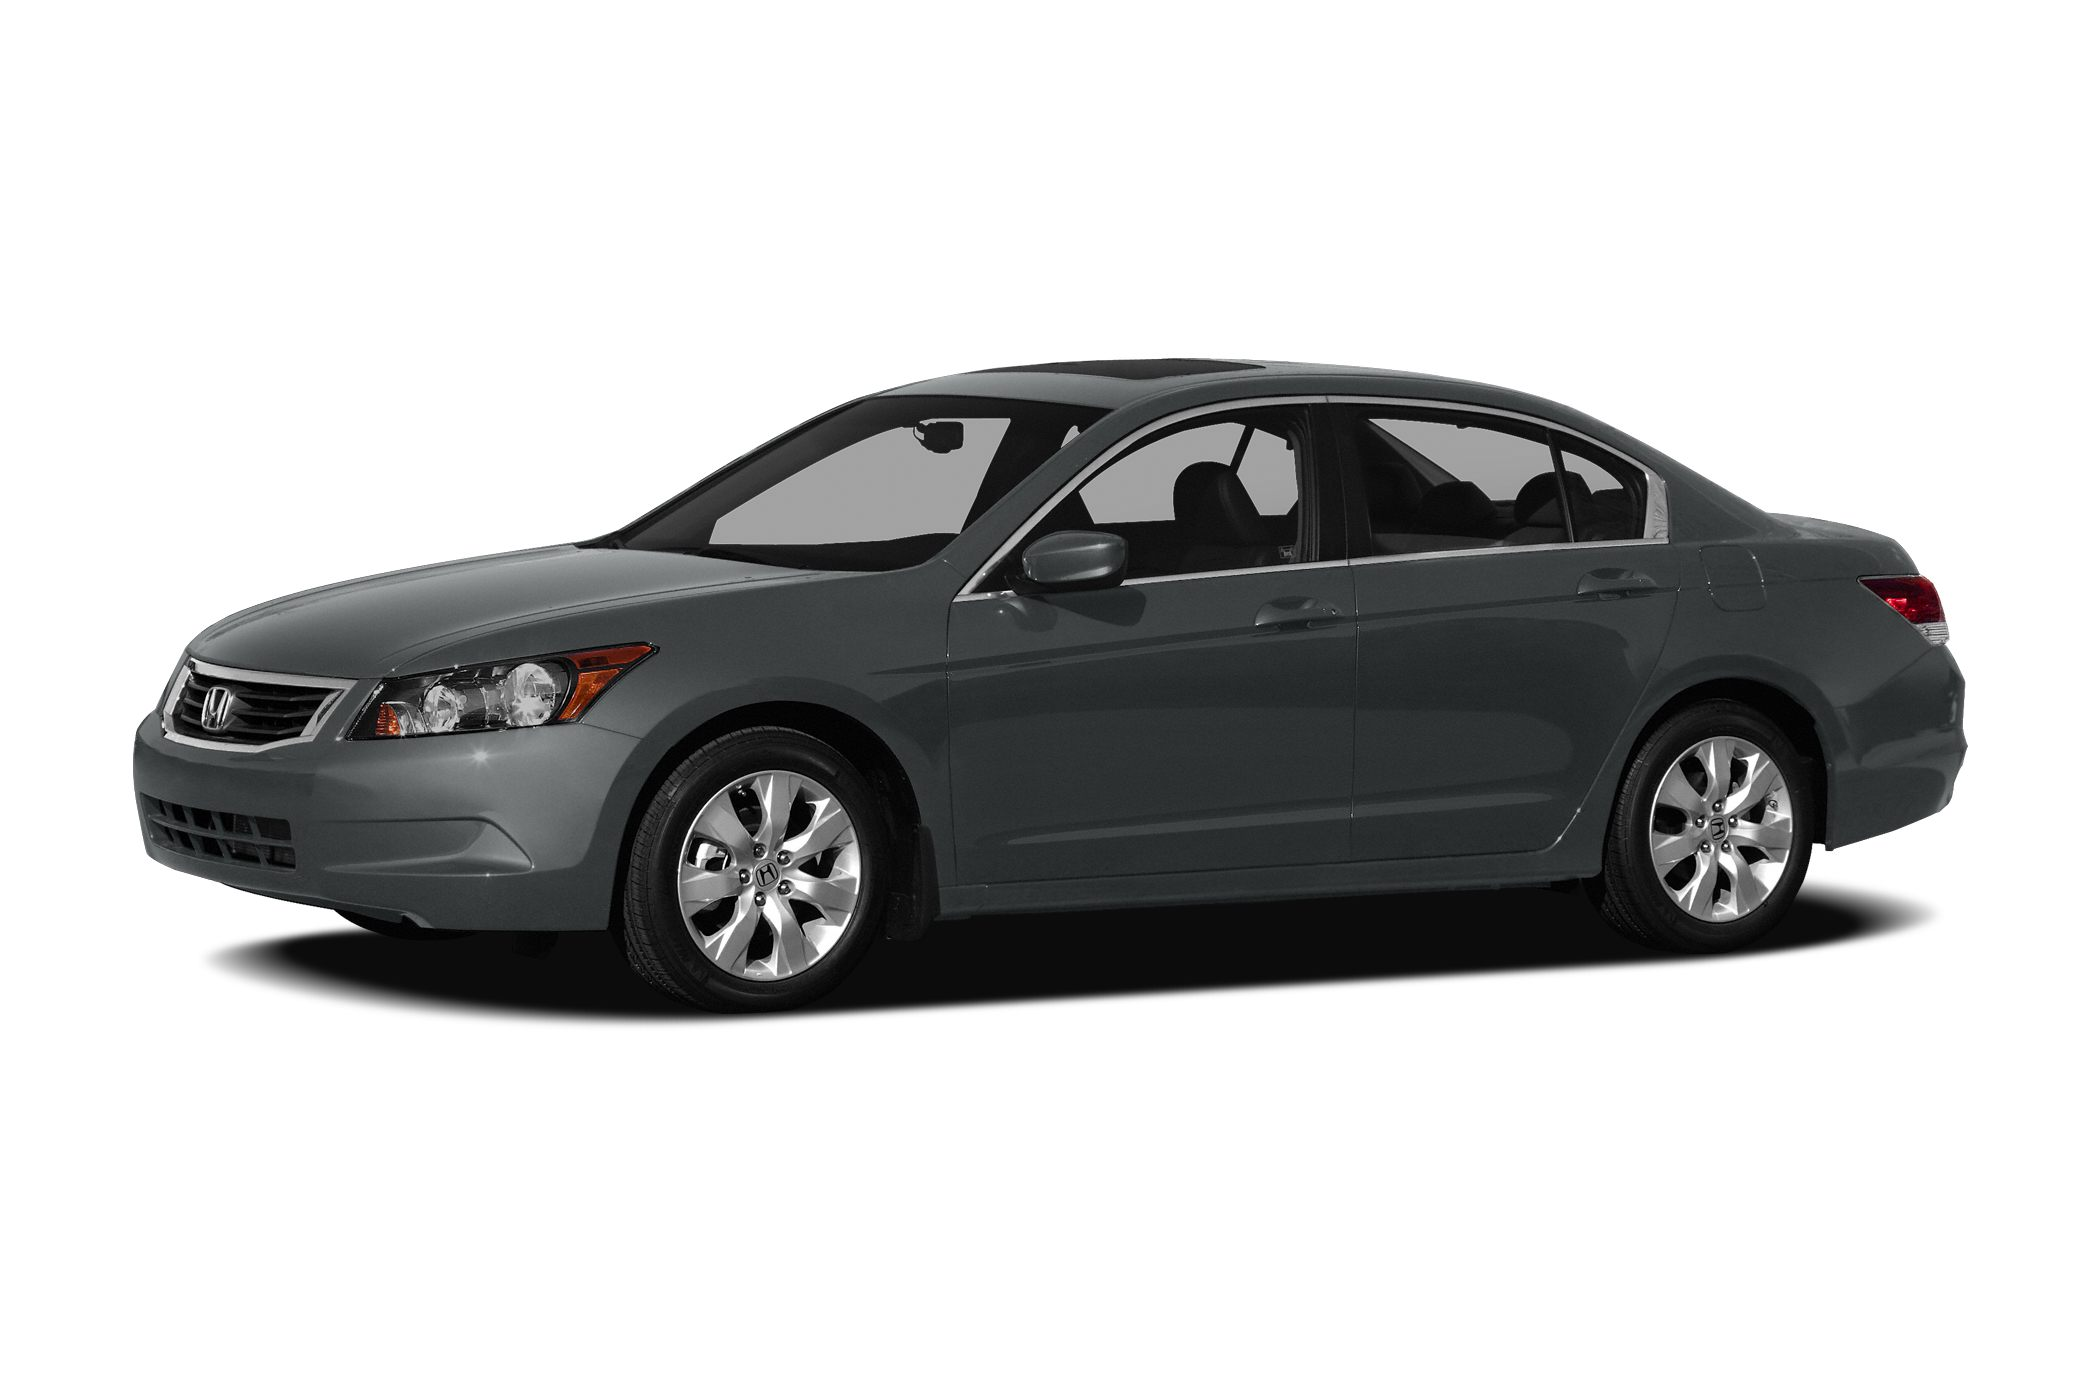 2010 Honda Accord 24 LX WHENIT COMES TO EXCELLENCE IN USED CAR SALES YOU KNOW YOU Miles 6130